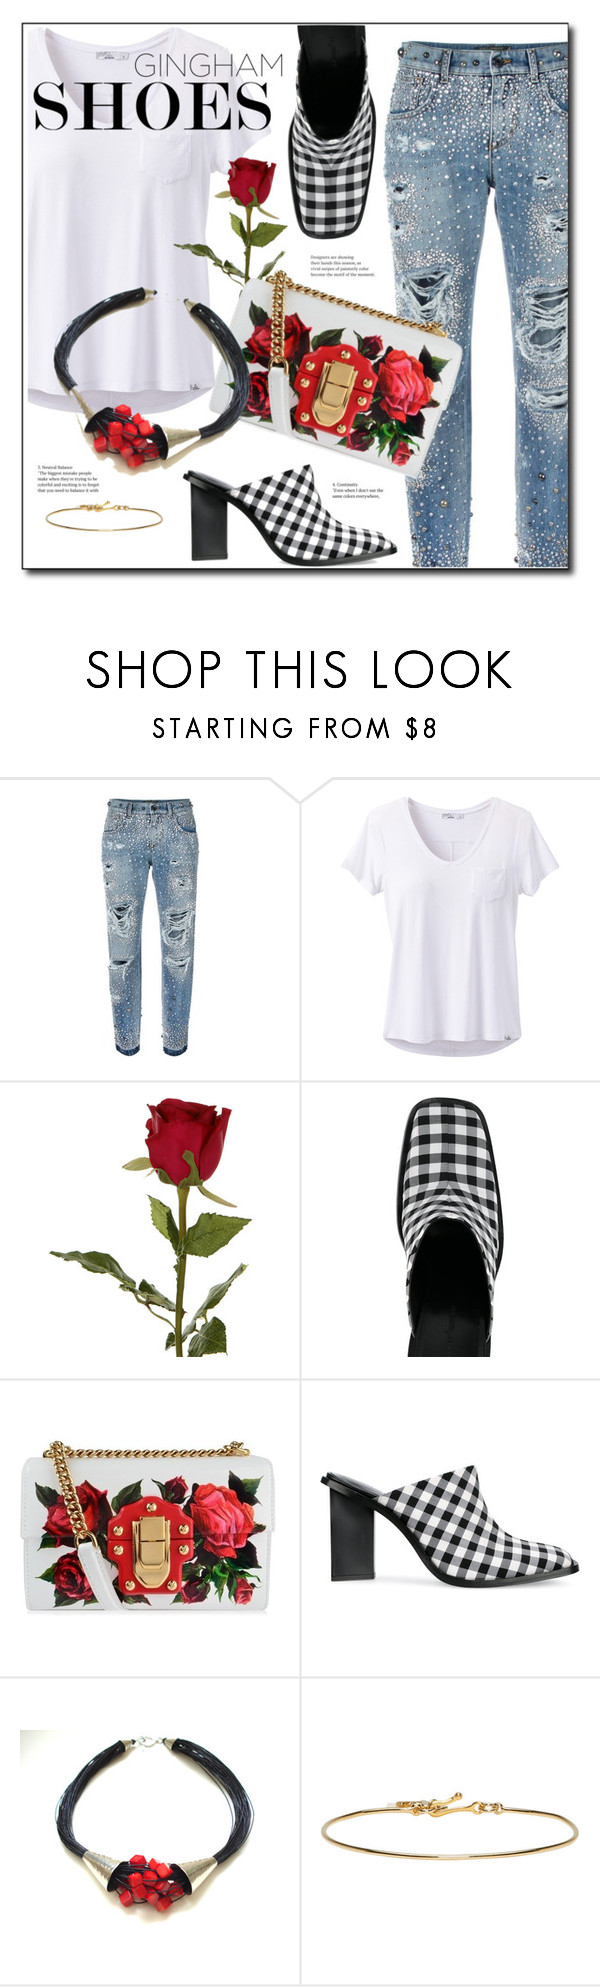 """Gingham Shoes"" by sheryl-lee ❤ liked on Polyvore featuring Dolce&Gabbana, prAna, Sia, Marques'Almeida and Isabel Marant"